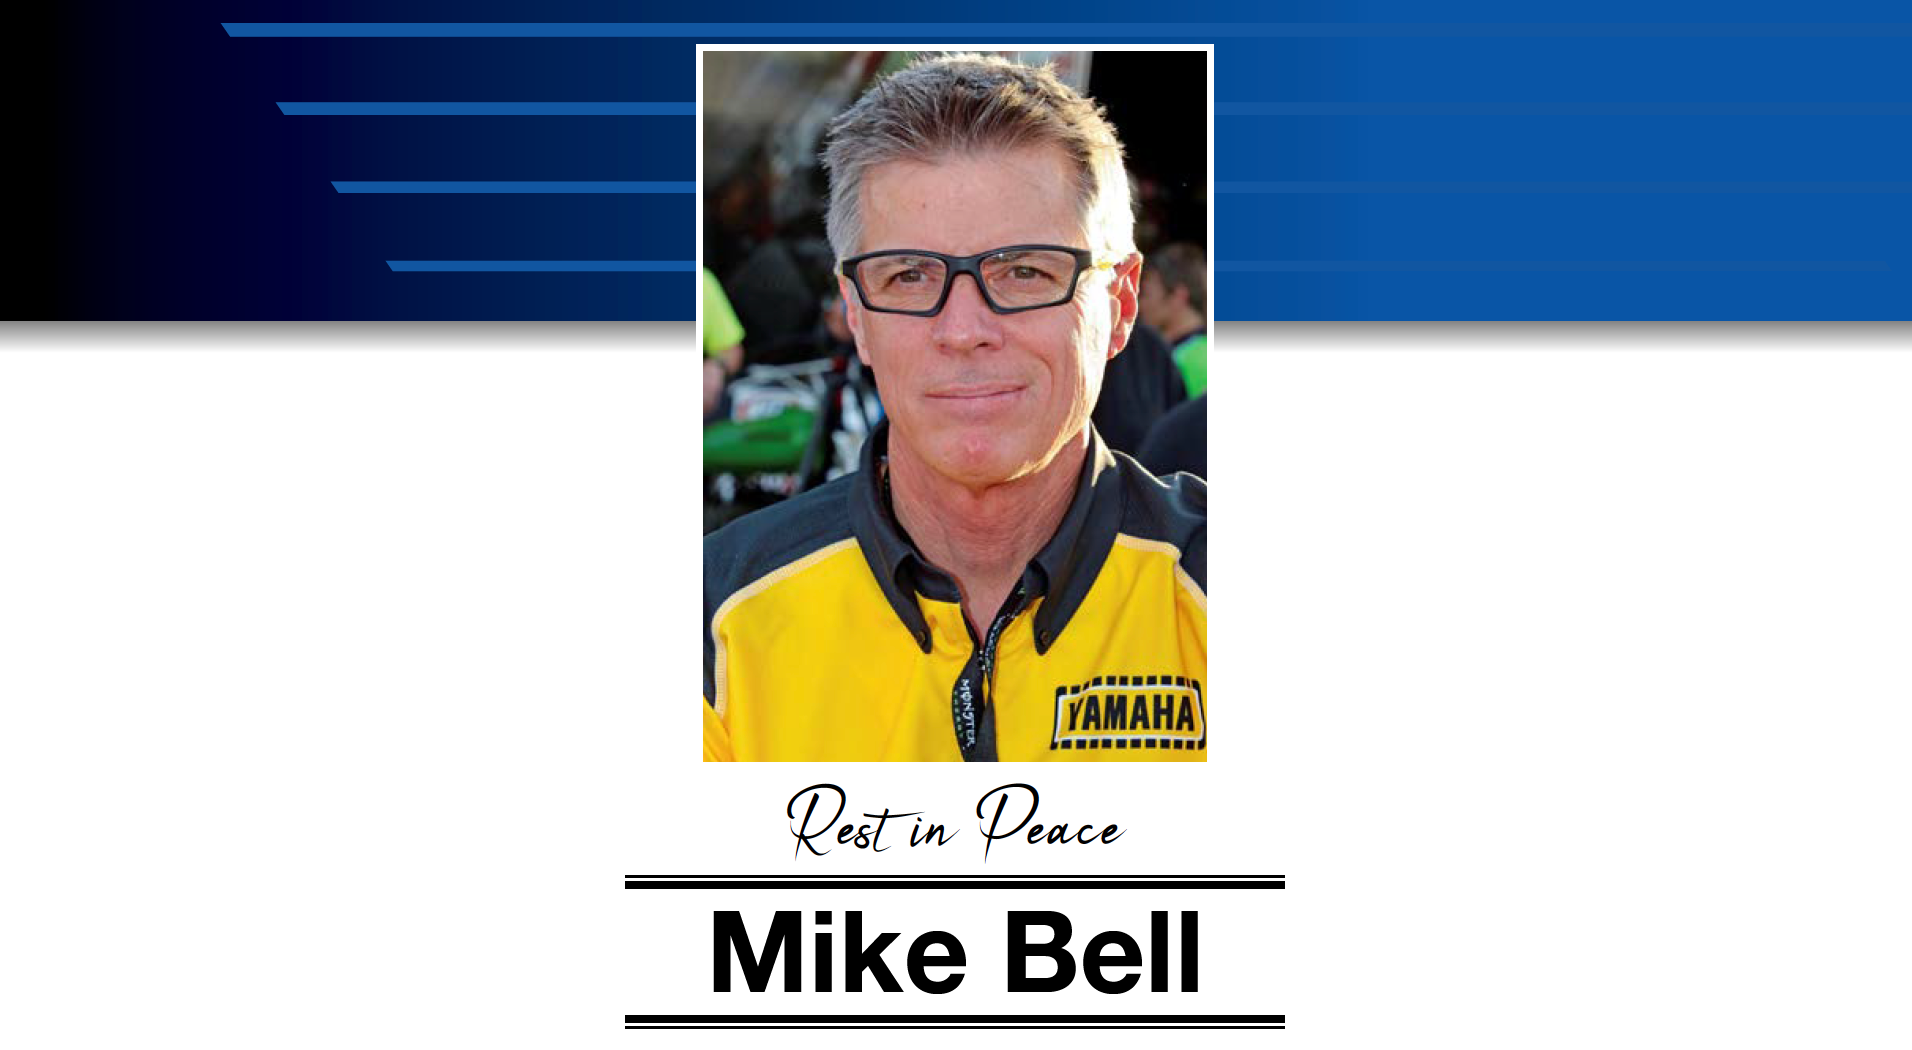 Rest in peace Mike Bell